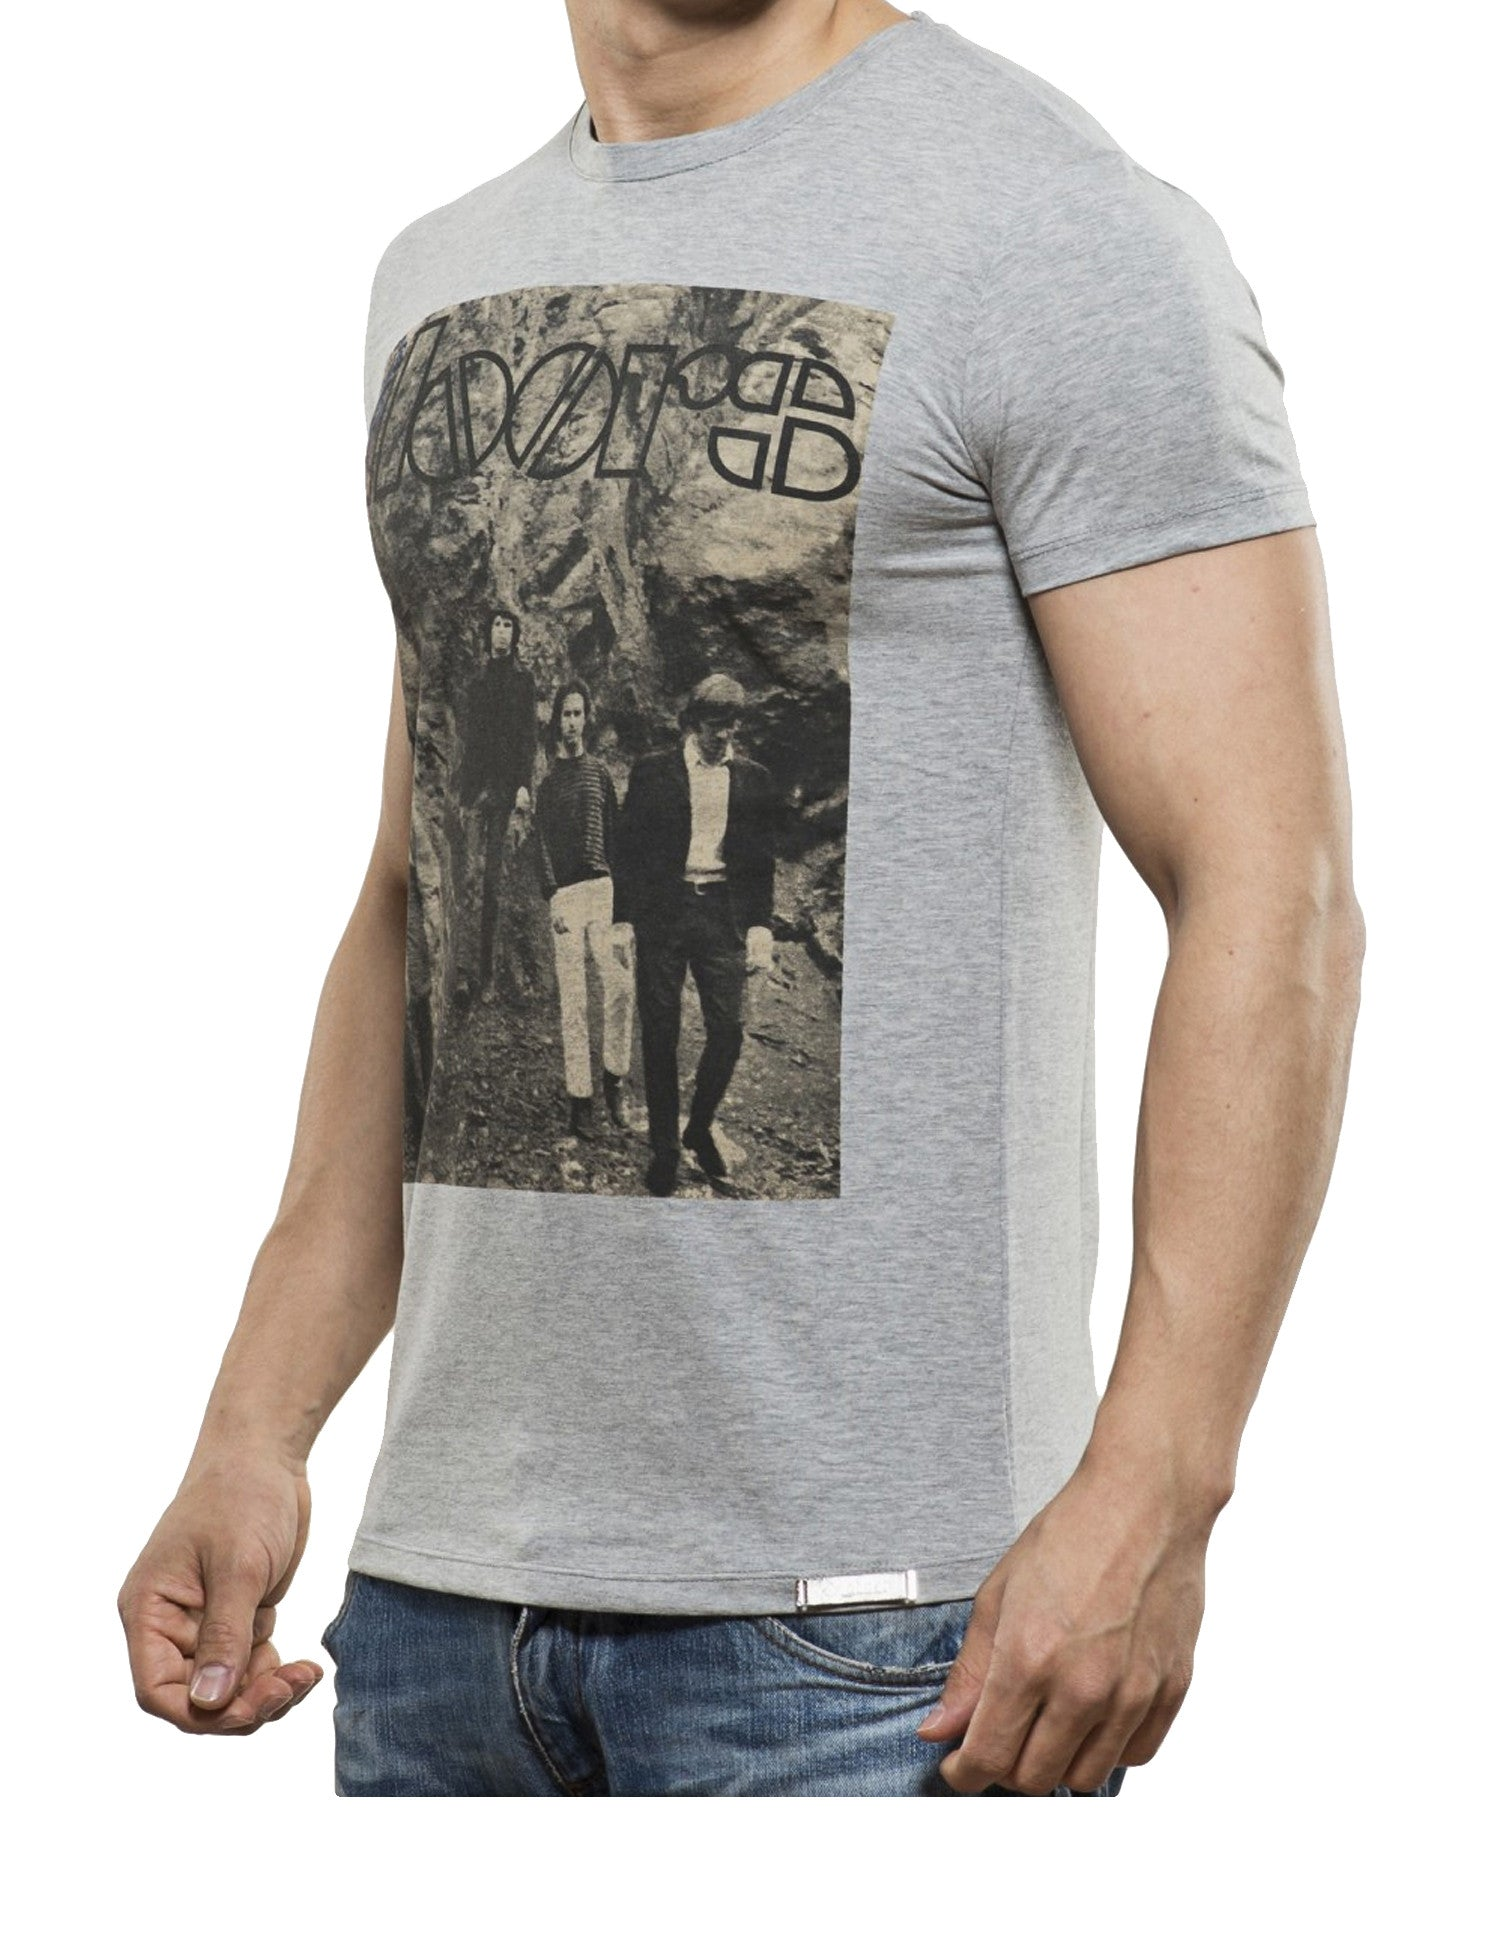 Doors T-Shirt Grey